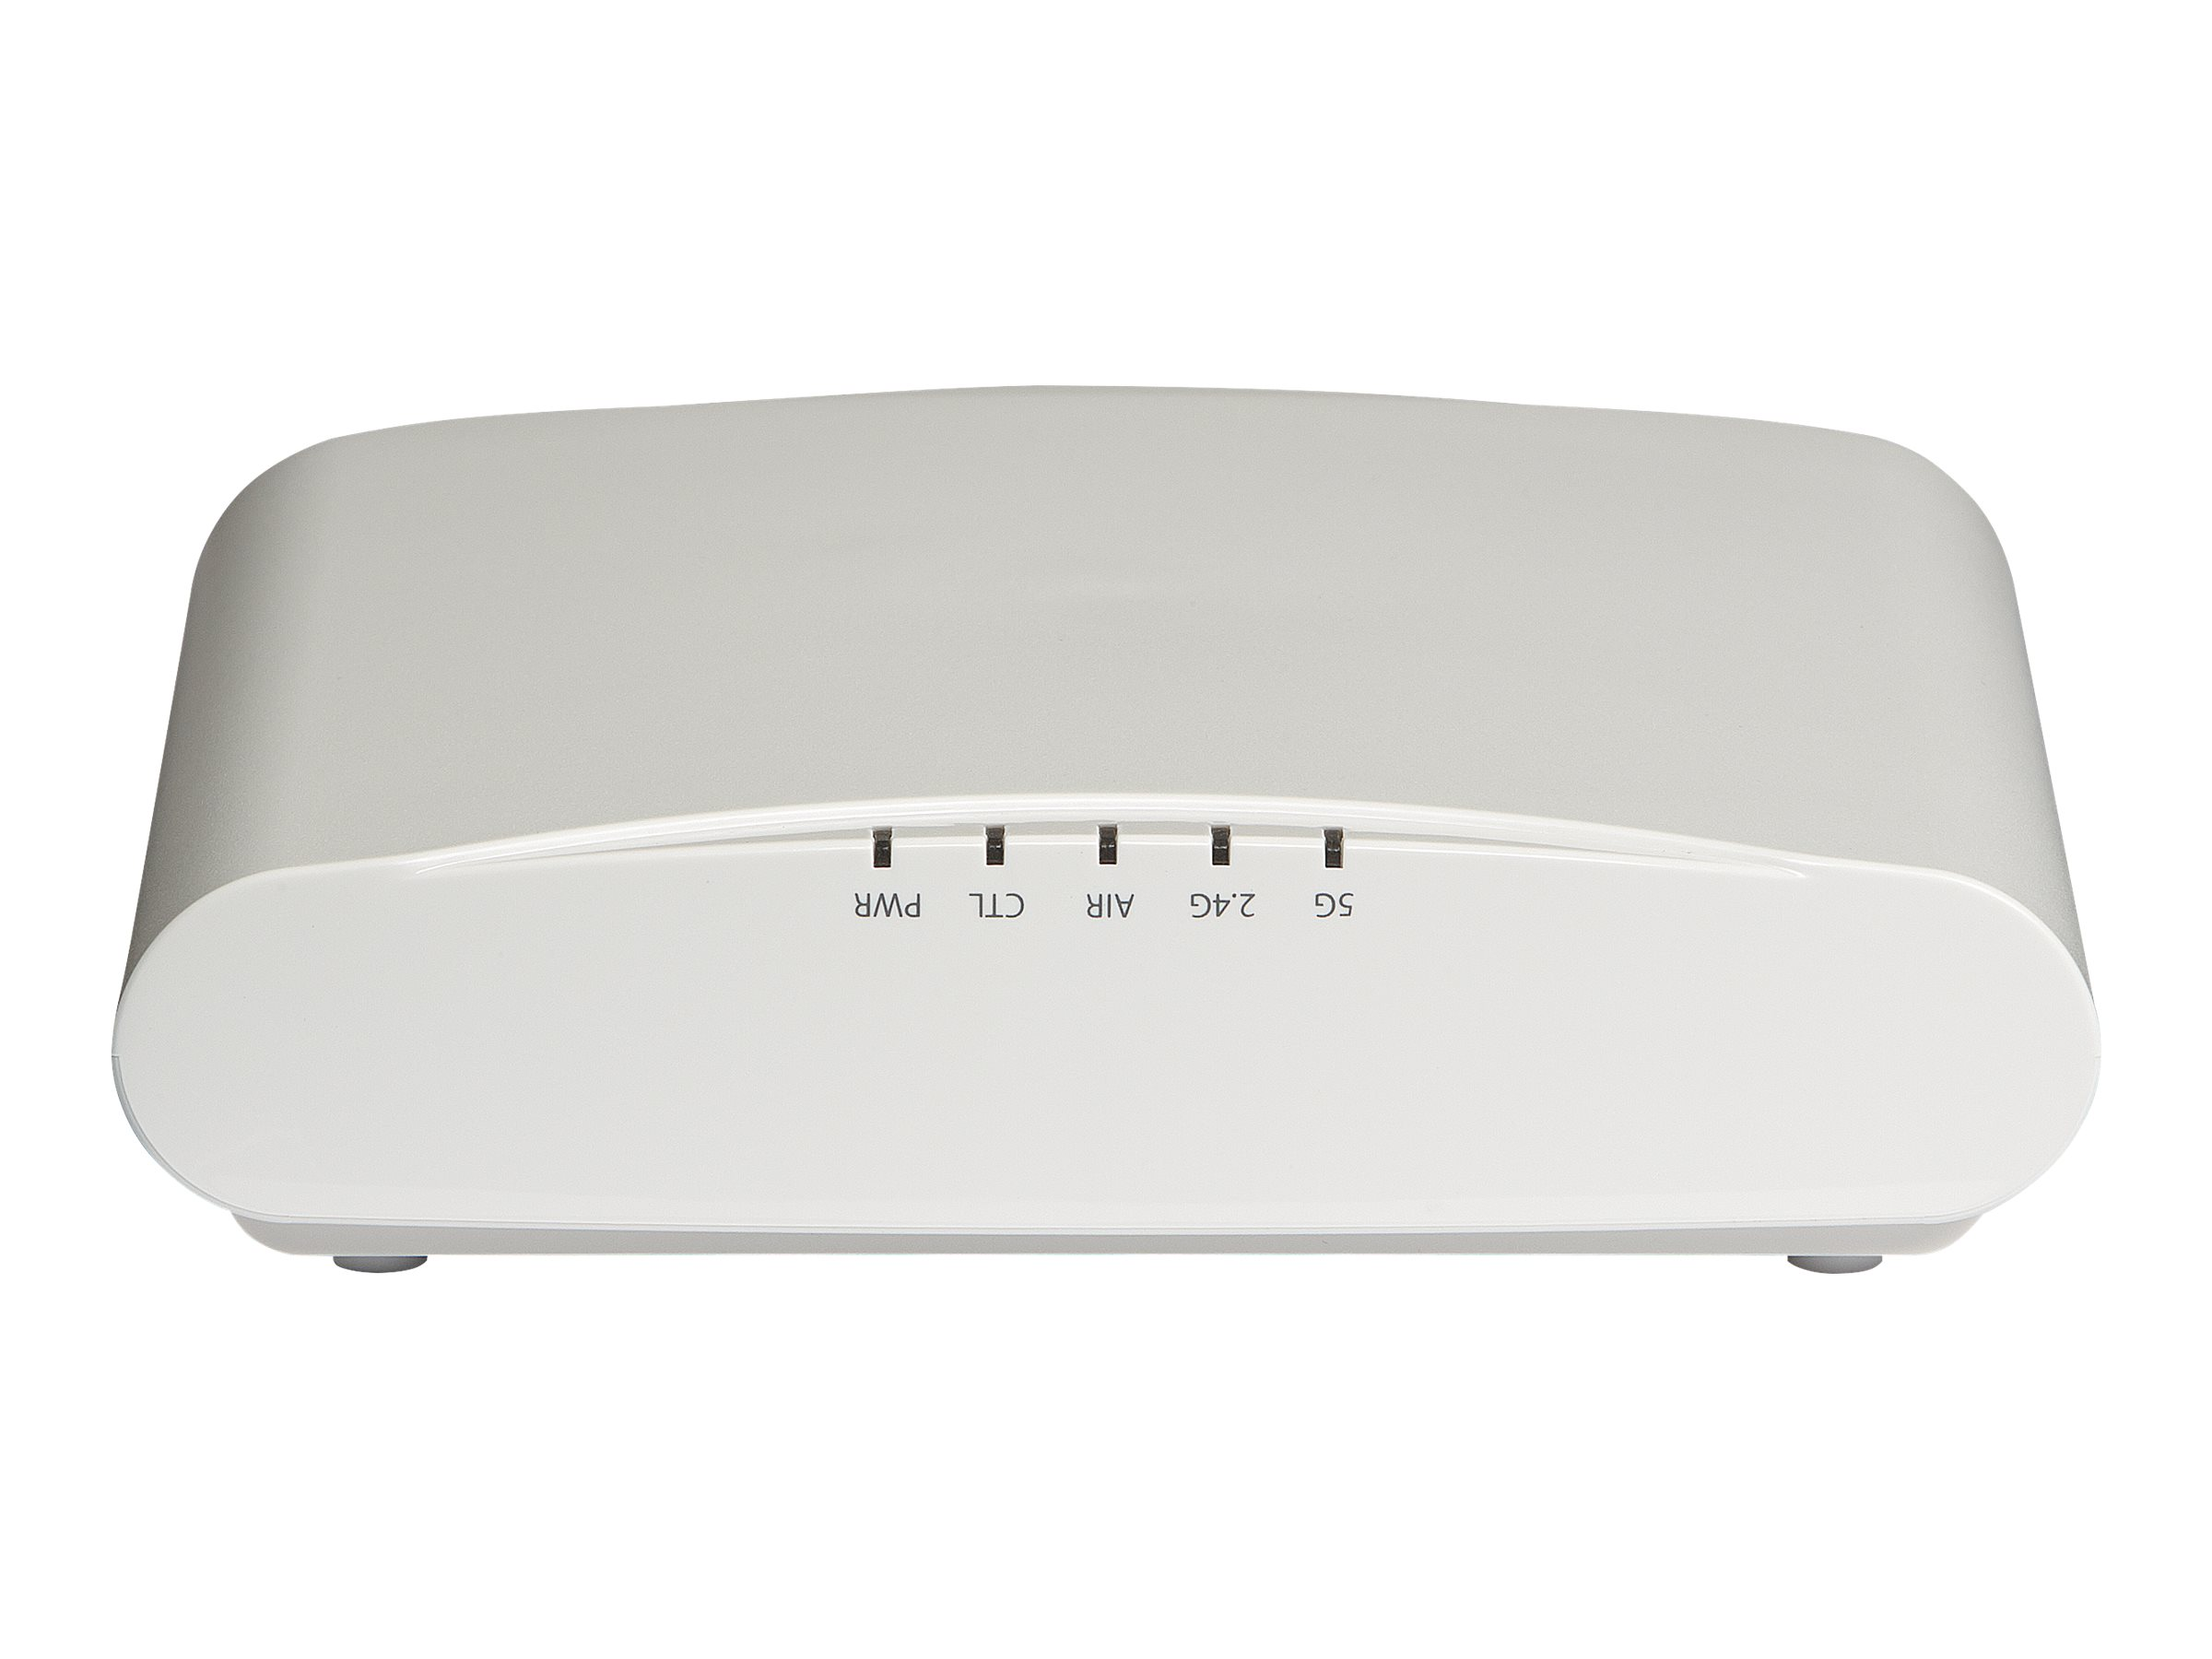 Ruckus R610 - Unleashed - wireless access point